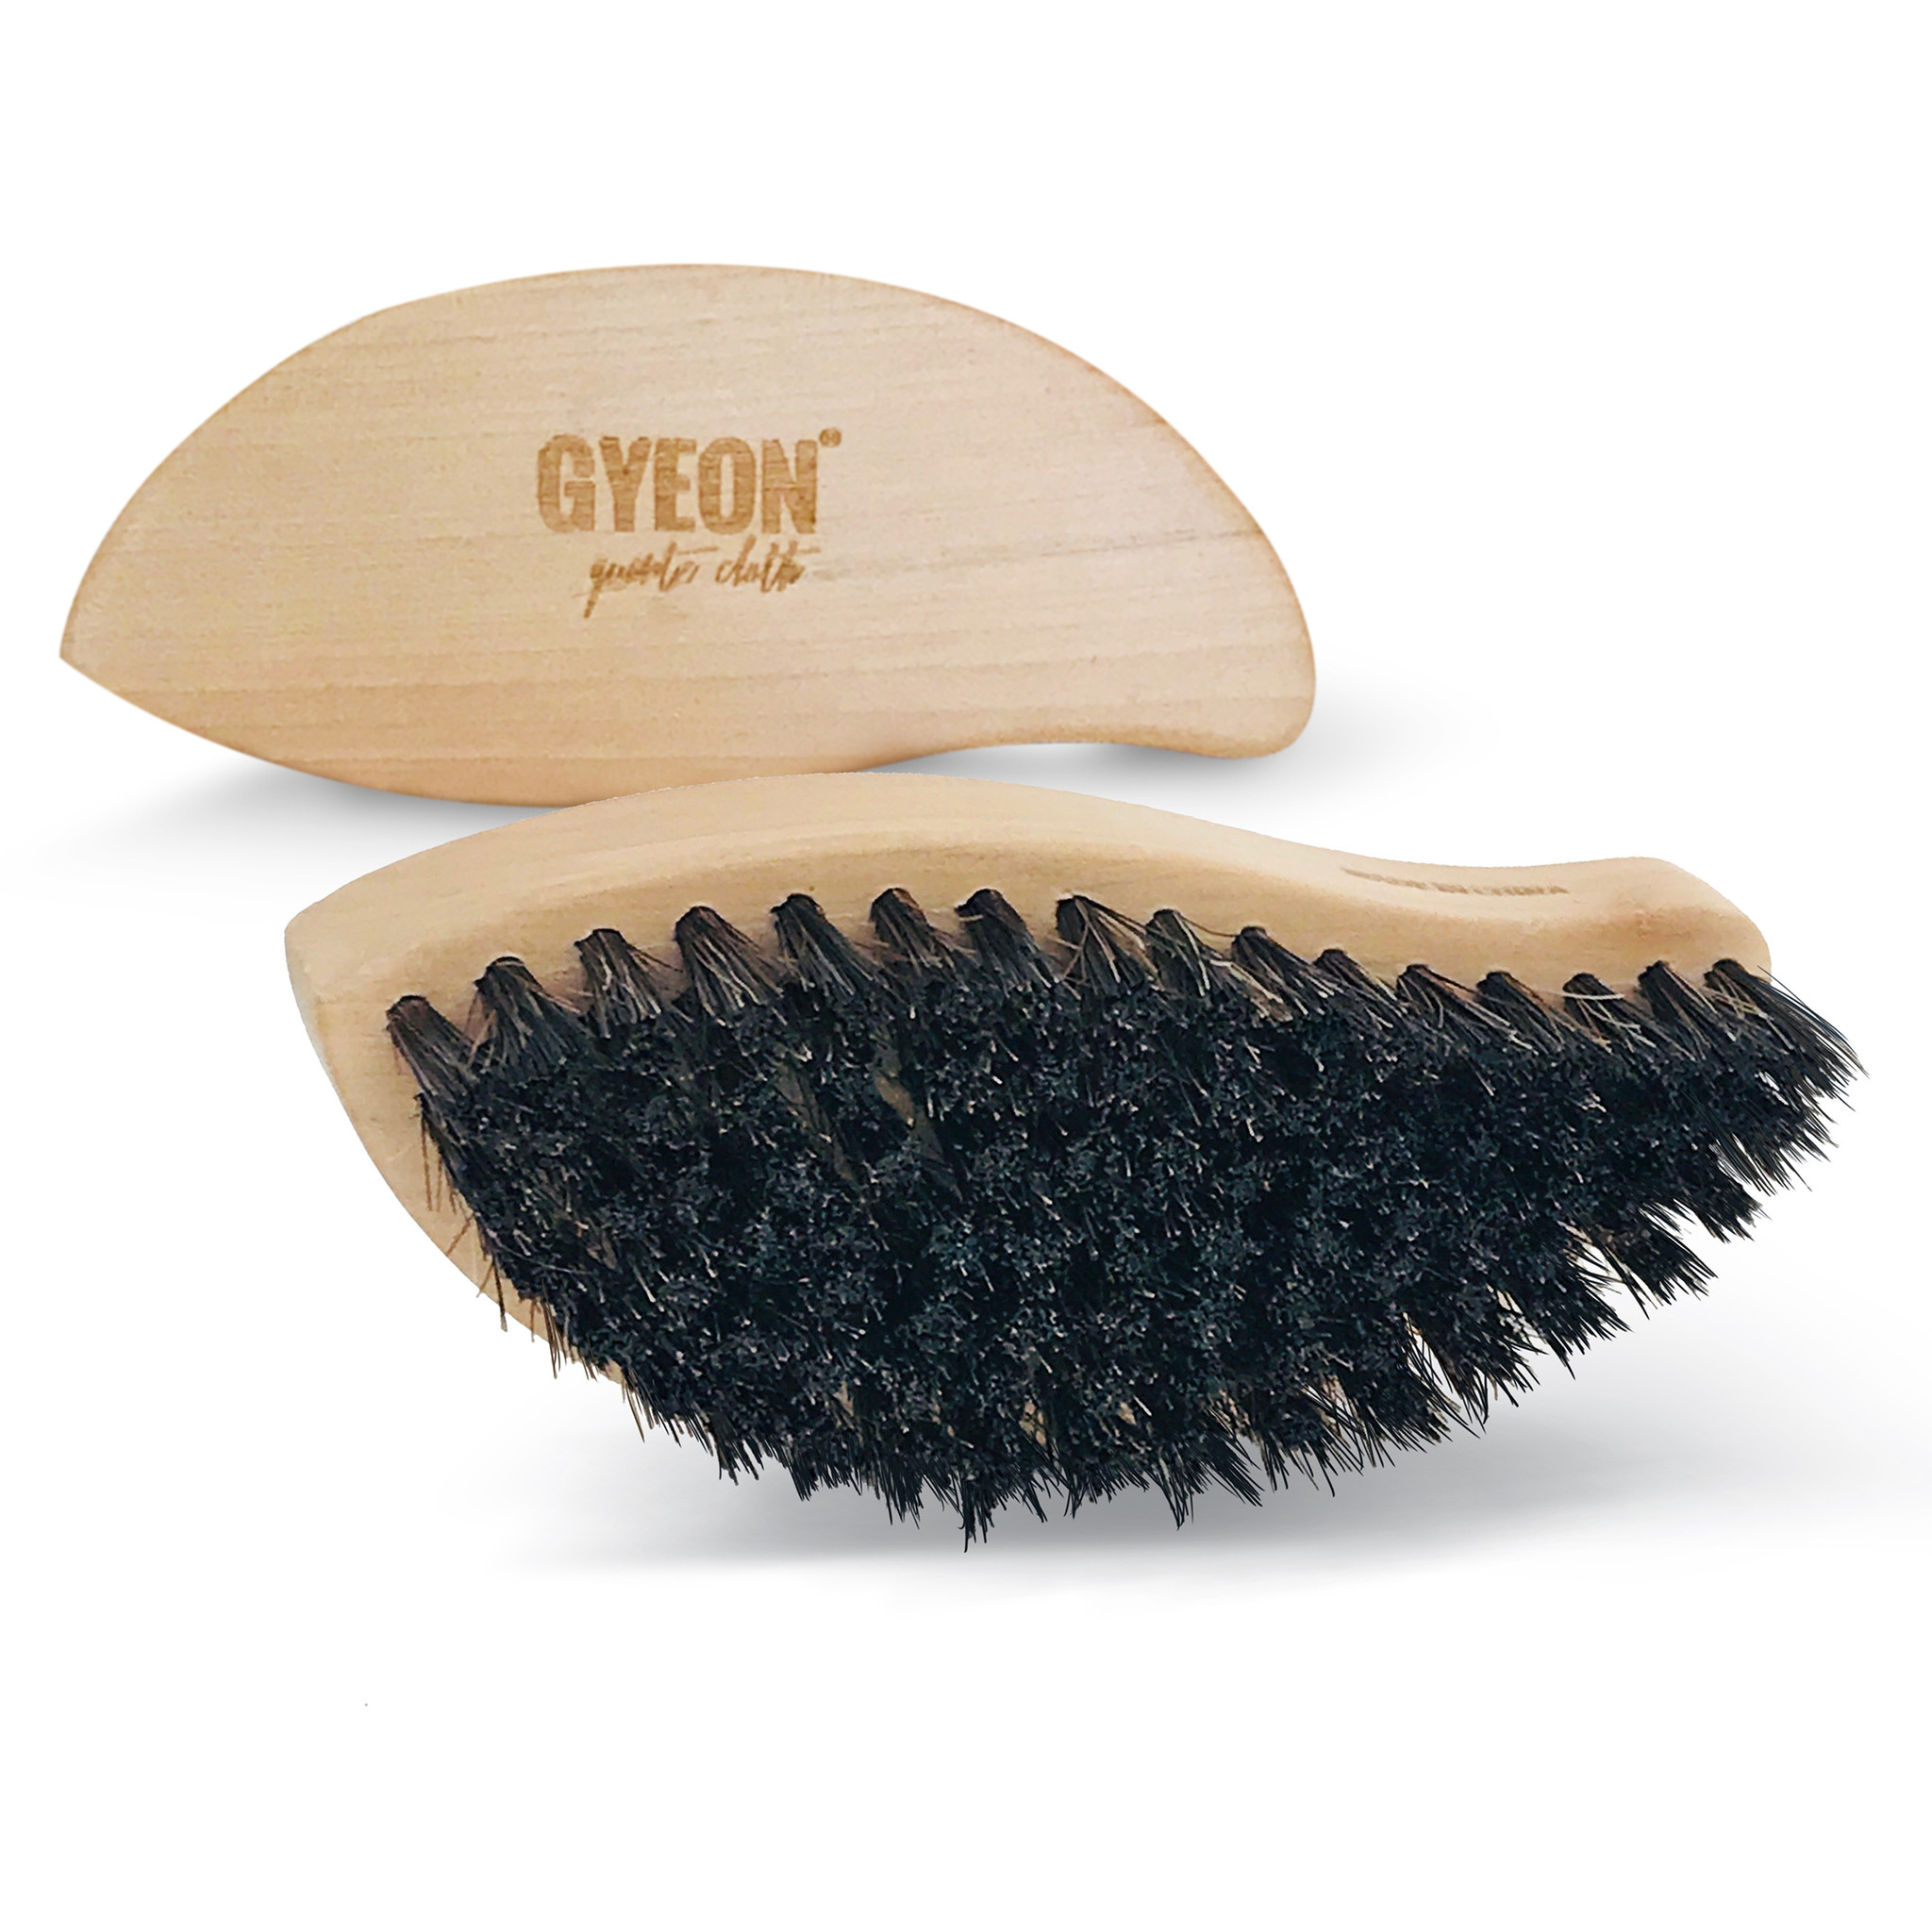 Gyeon Q2M Leather Brush